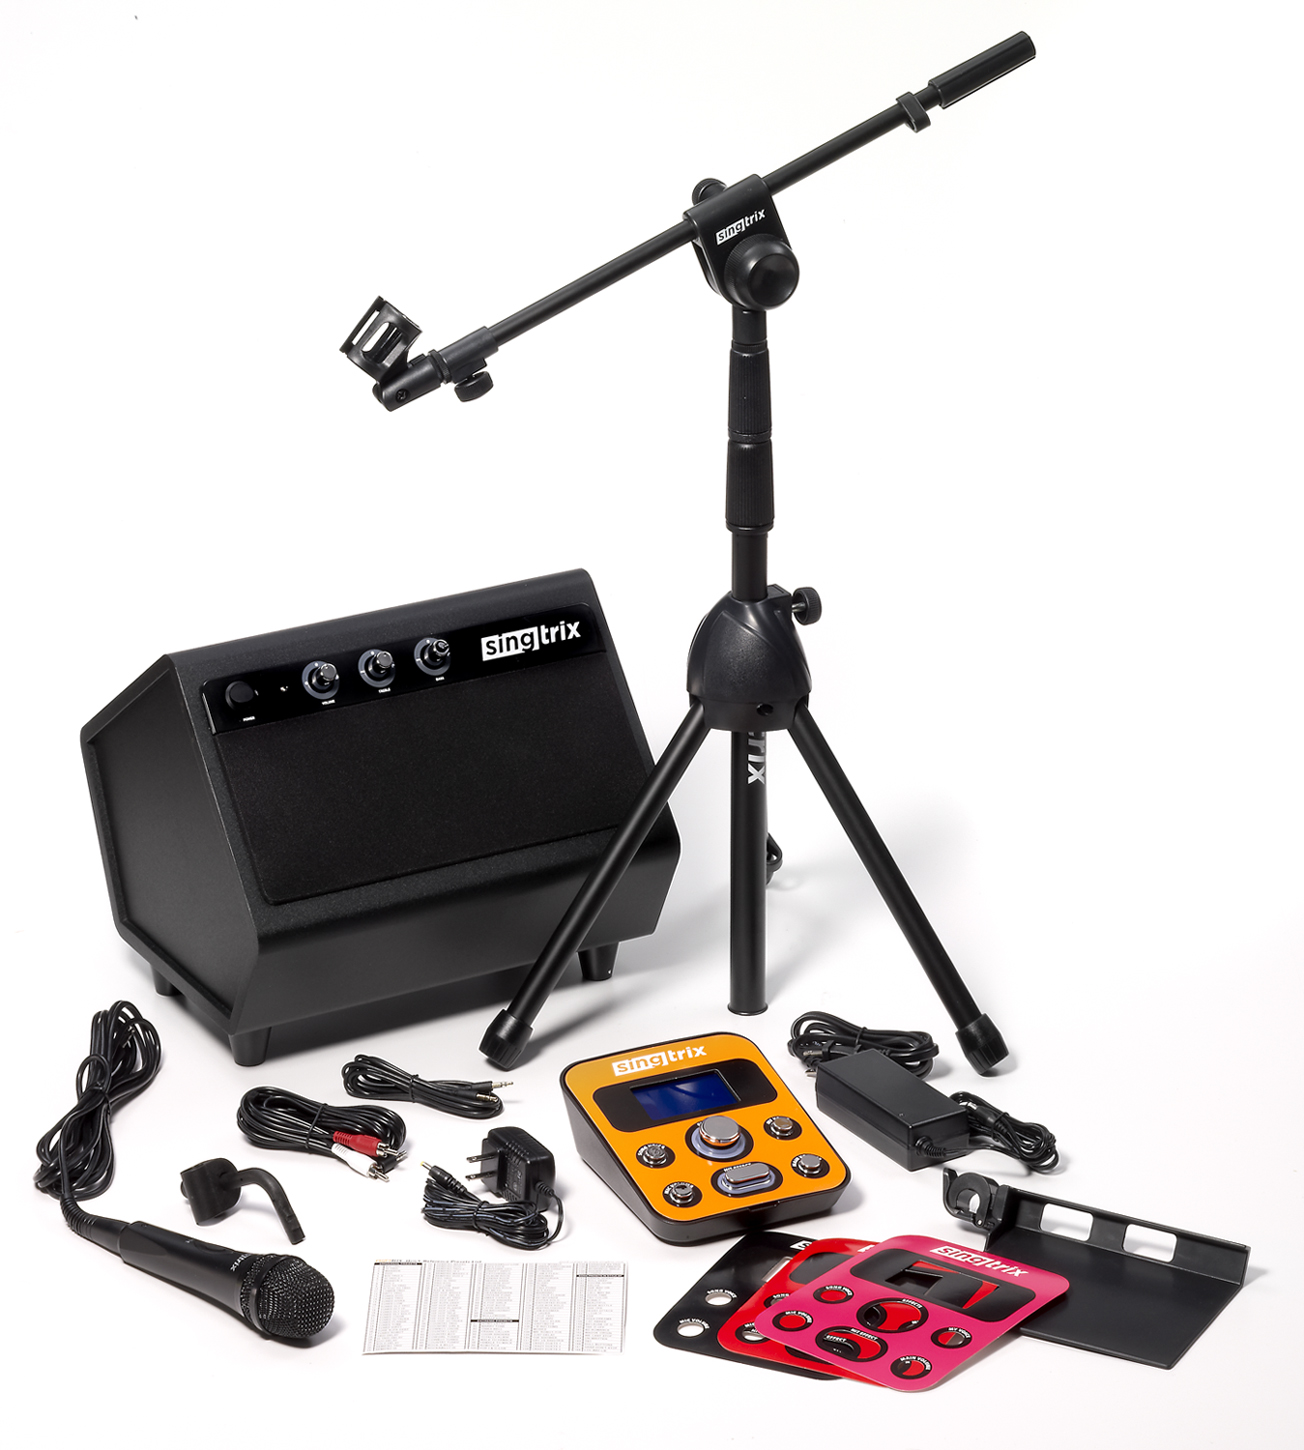 singtrix-party-bundle-premium-edition-karaoke-system-97.jpg